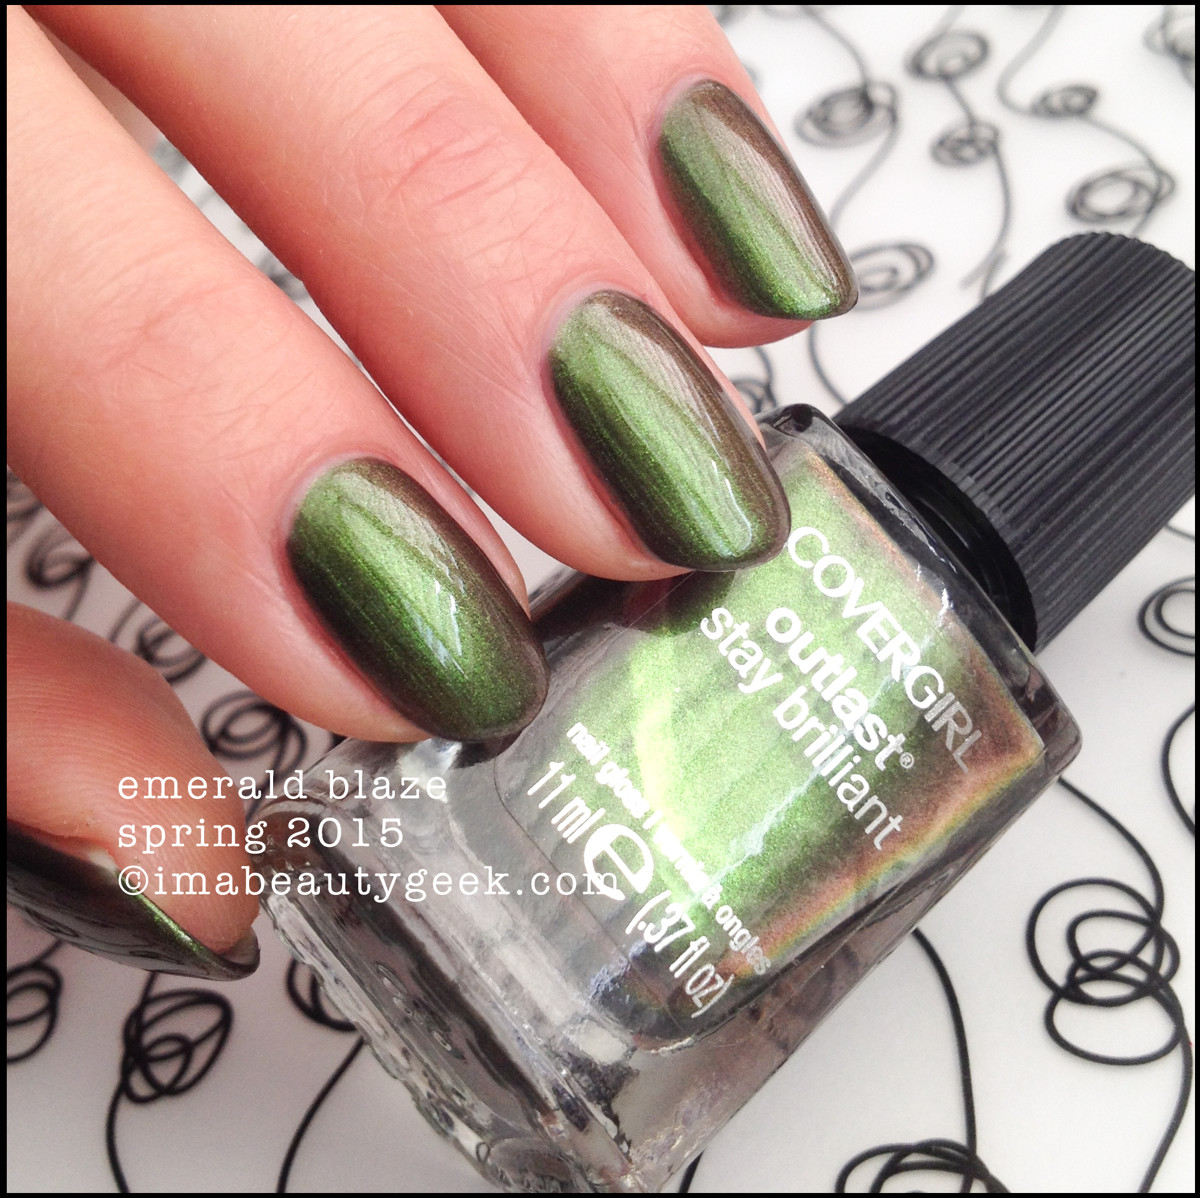 CoverGirl Nails Spring 2015_CoverGirl Emerald Blaze Outlast_2